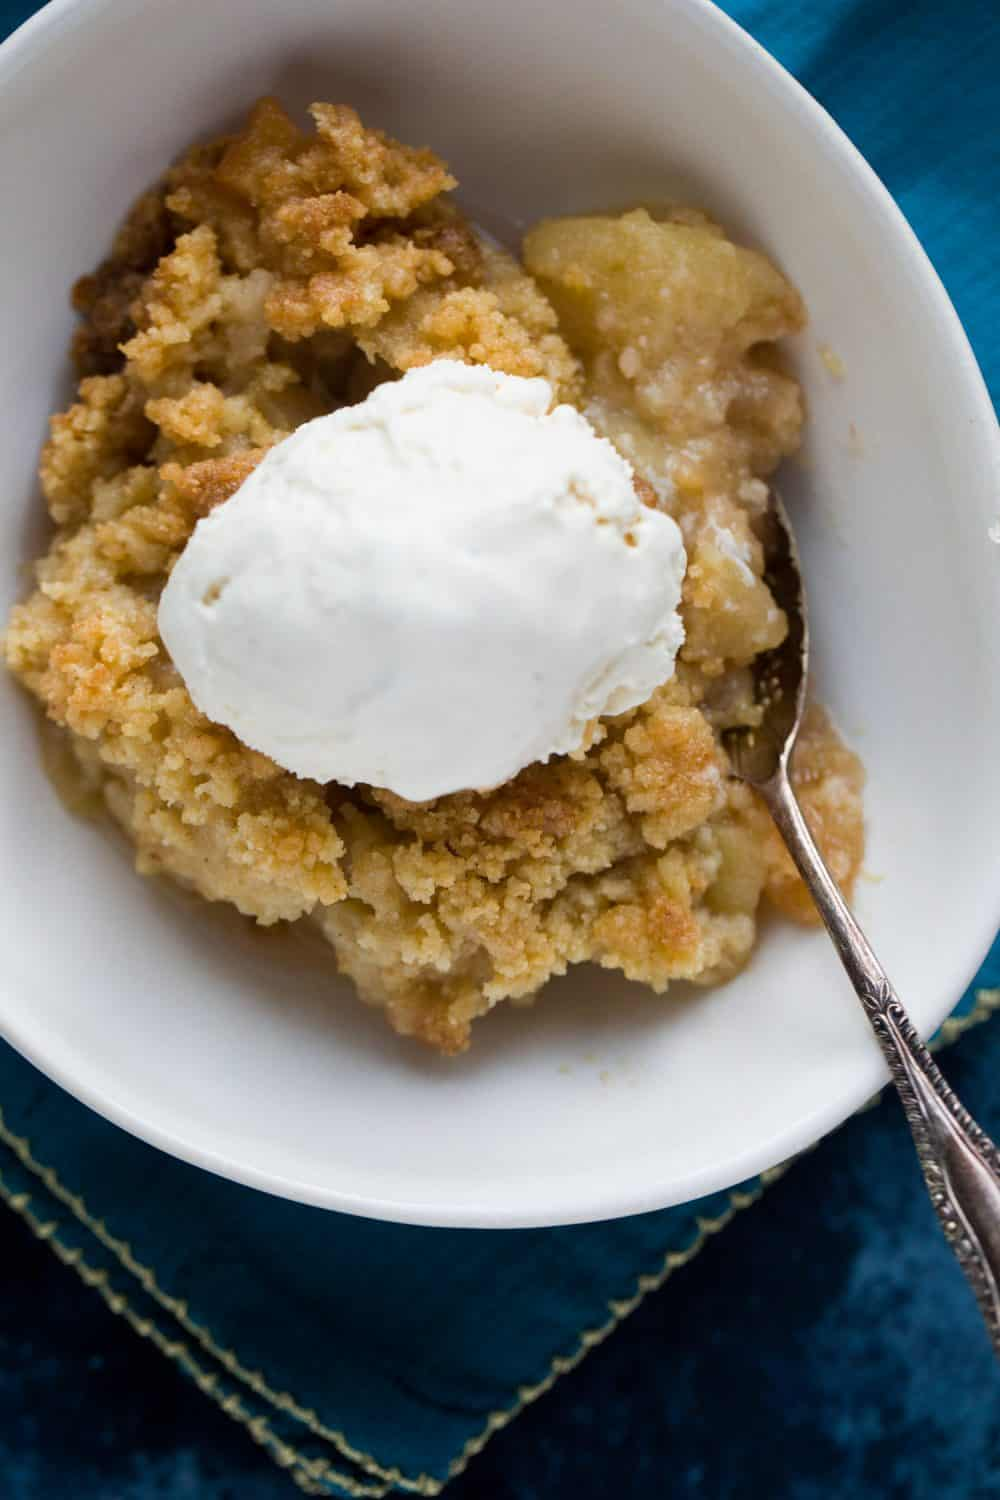 A white bowl with apple crisp inside and a scoop of ice cream on top.